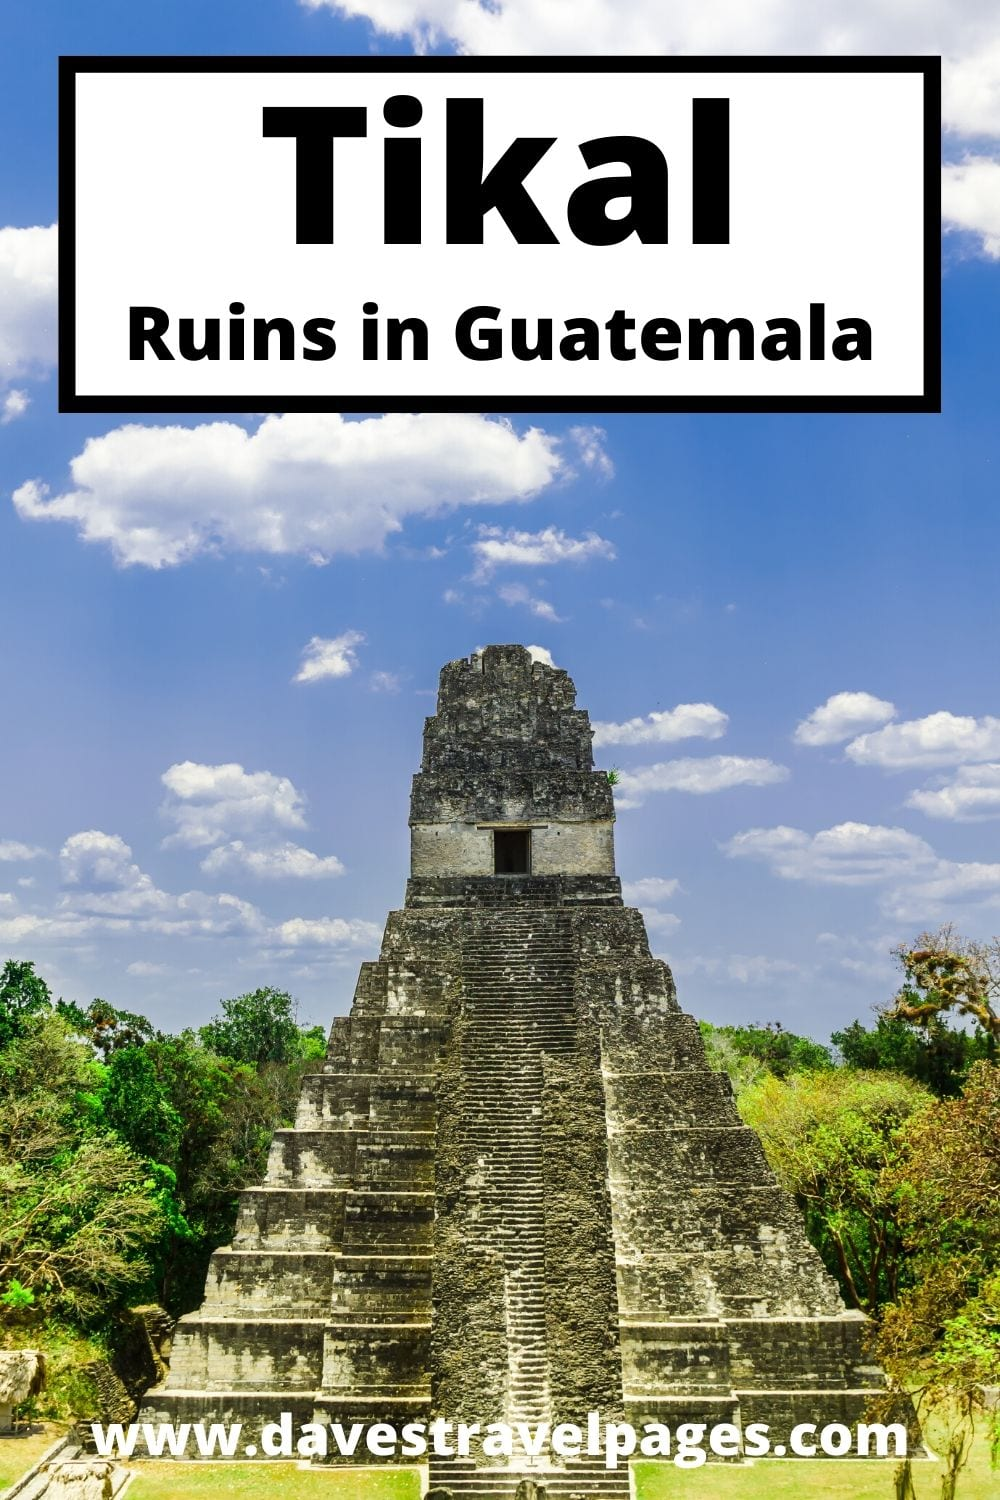 A collection of photos of Tikal in Guatemala